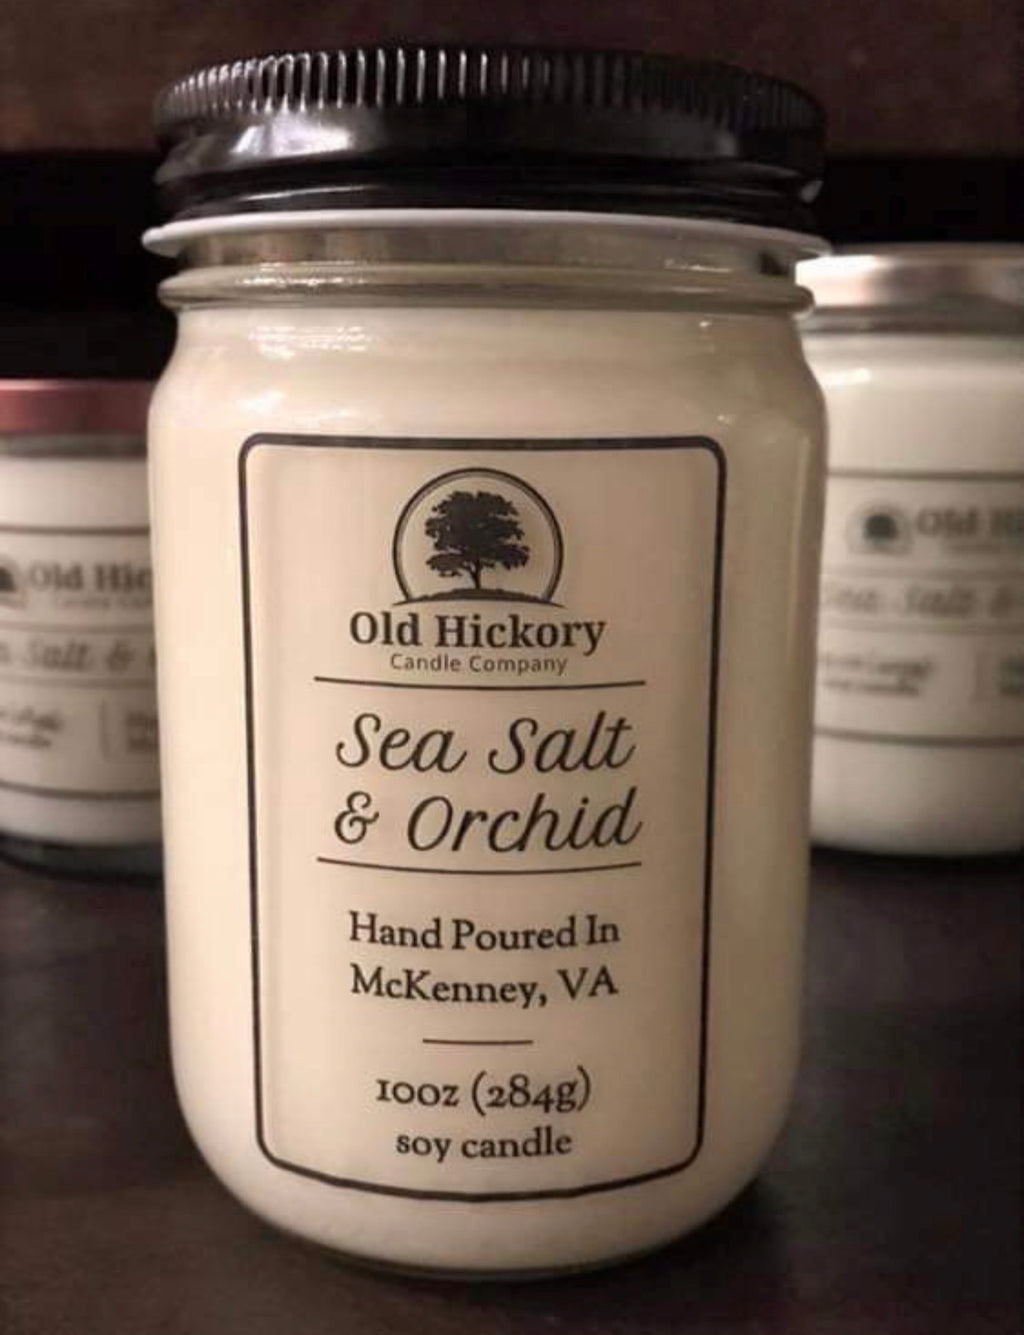 Old Hickory Candles - Monogram Gifts